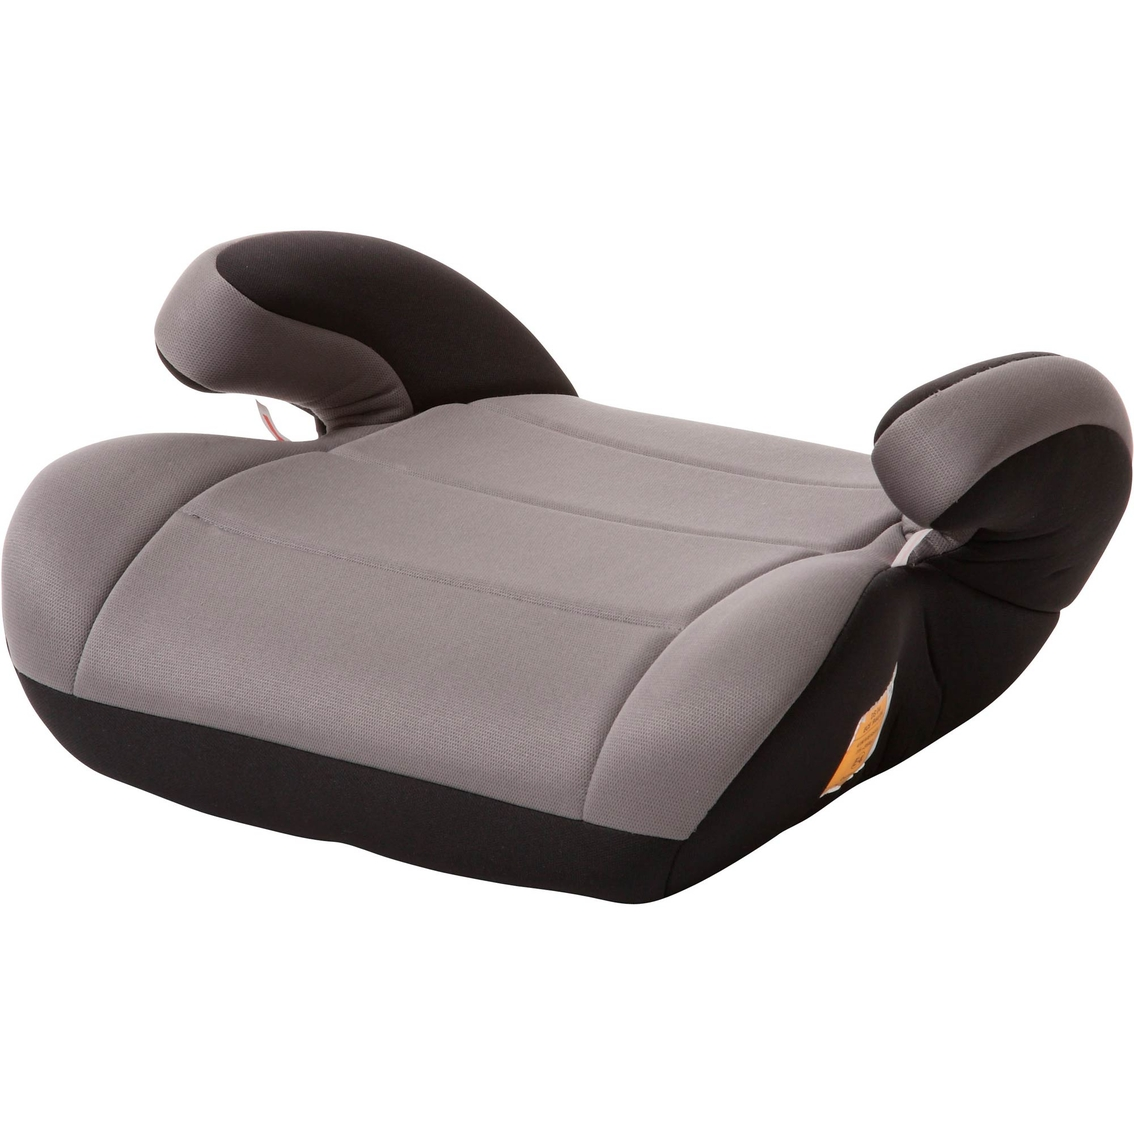 Cosco Top Side Booster Car Seat | Car Booster Seats | Baby & Toys ...